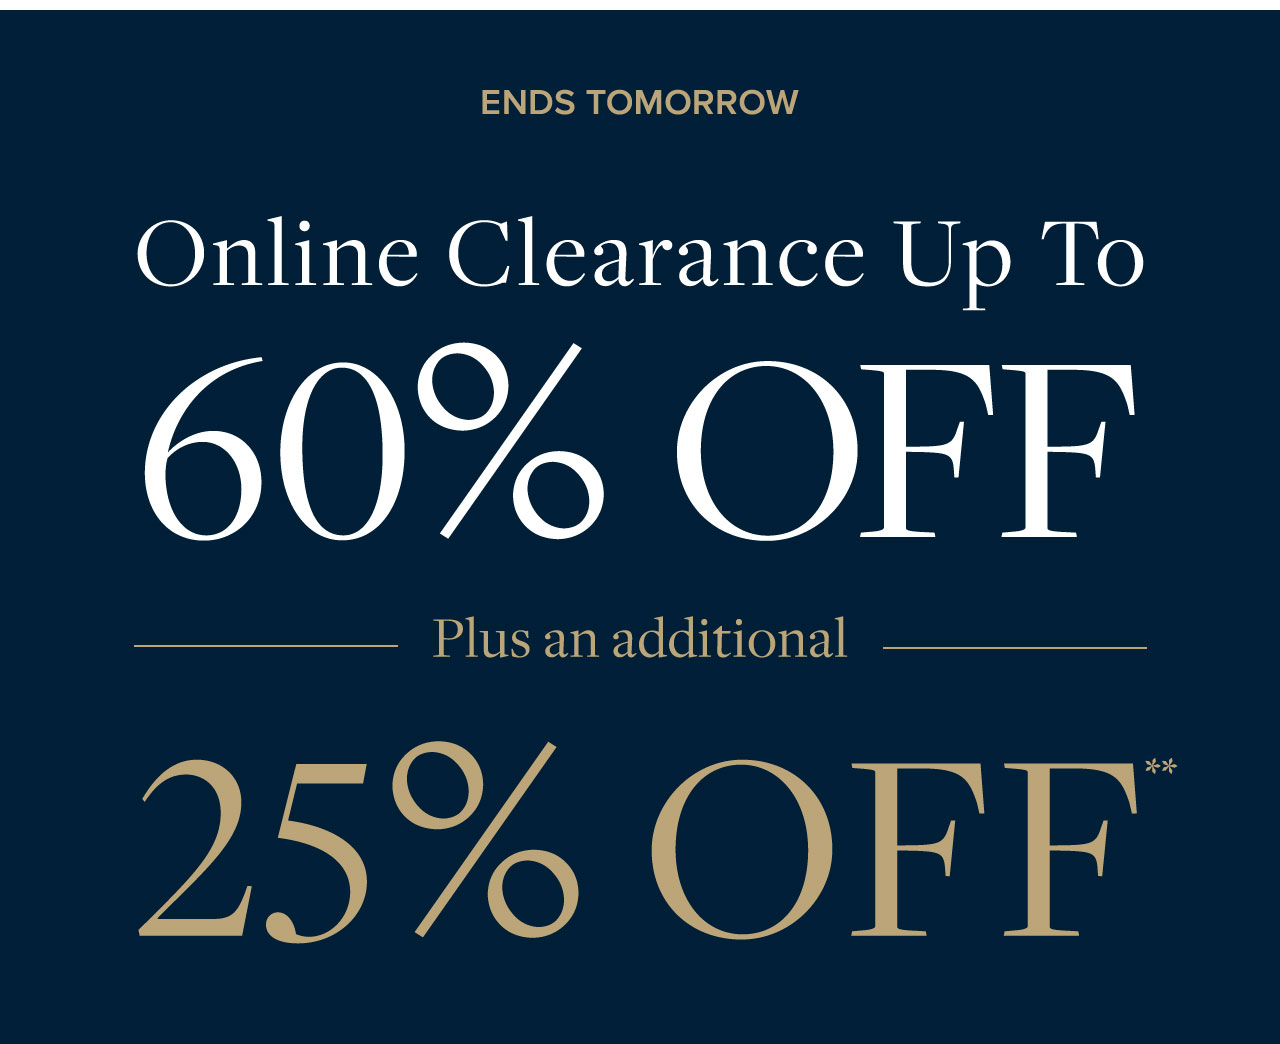 Ends Tomorrow Online Clearance Up to 60% Off Plus an additional 25% Off.